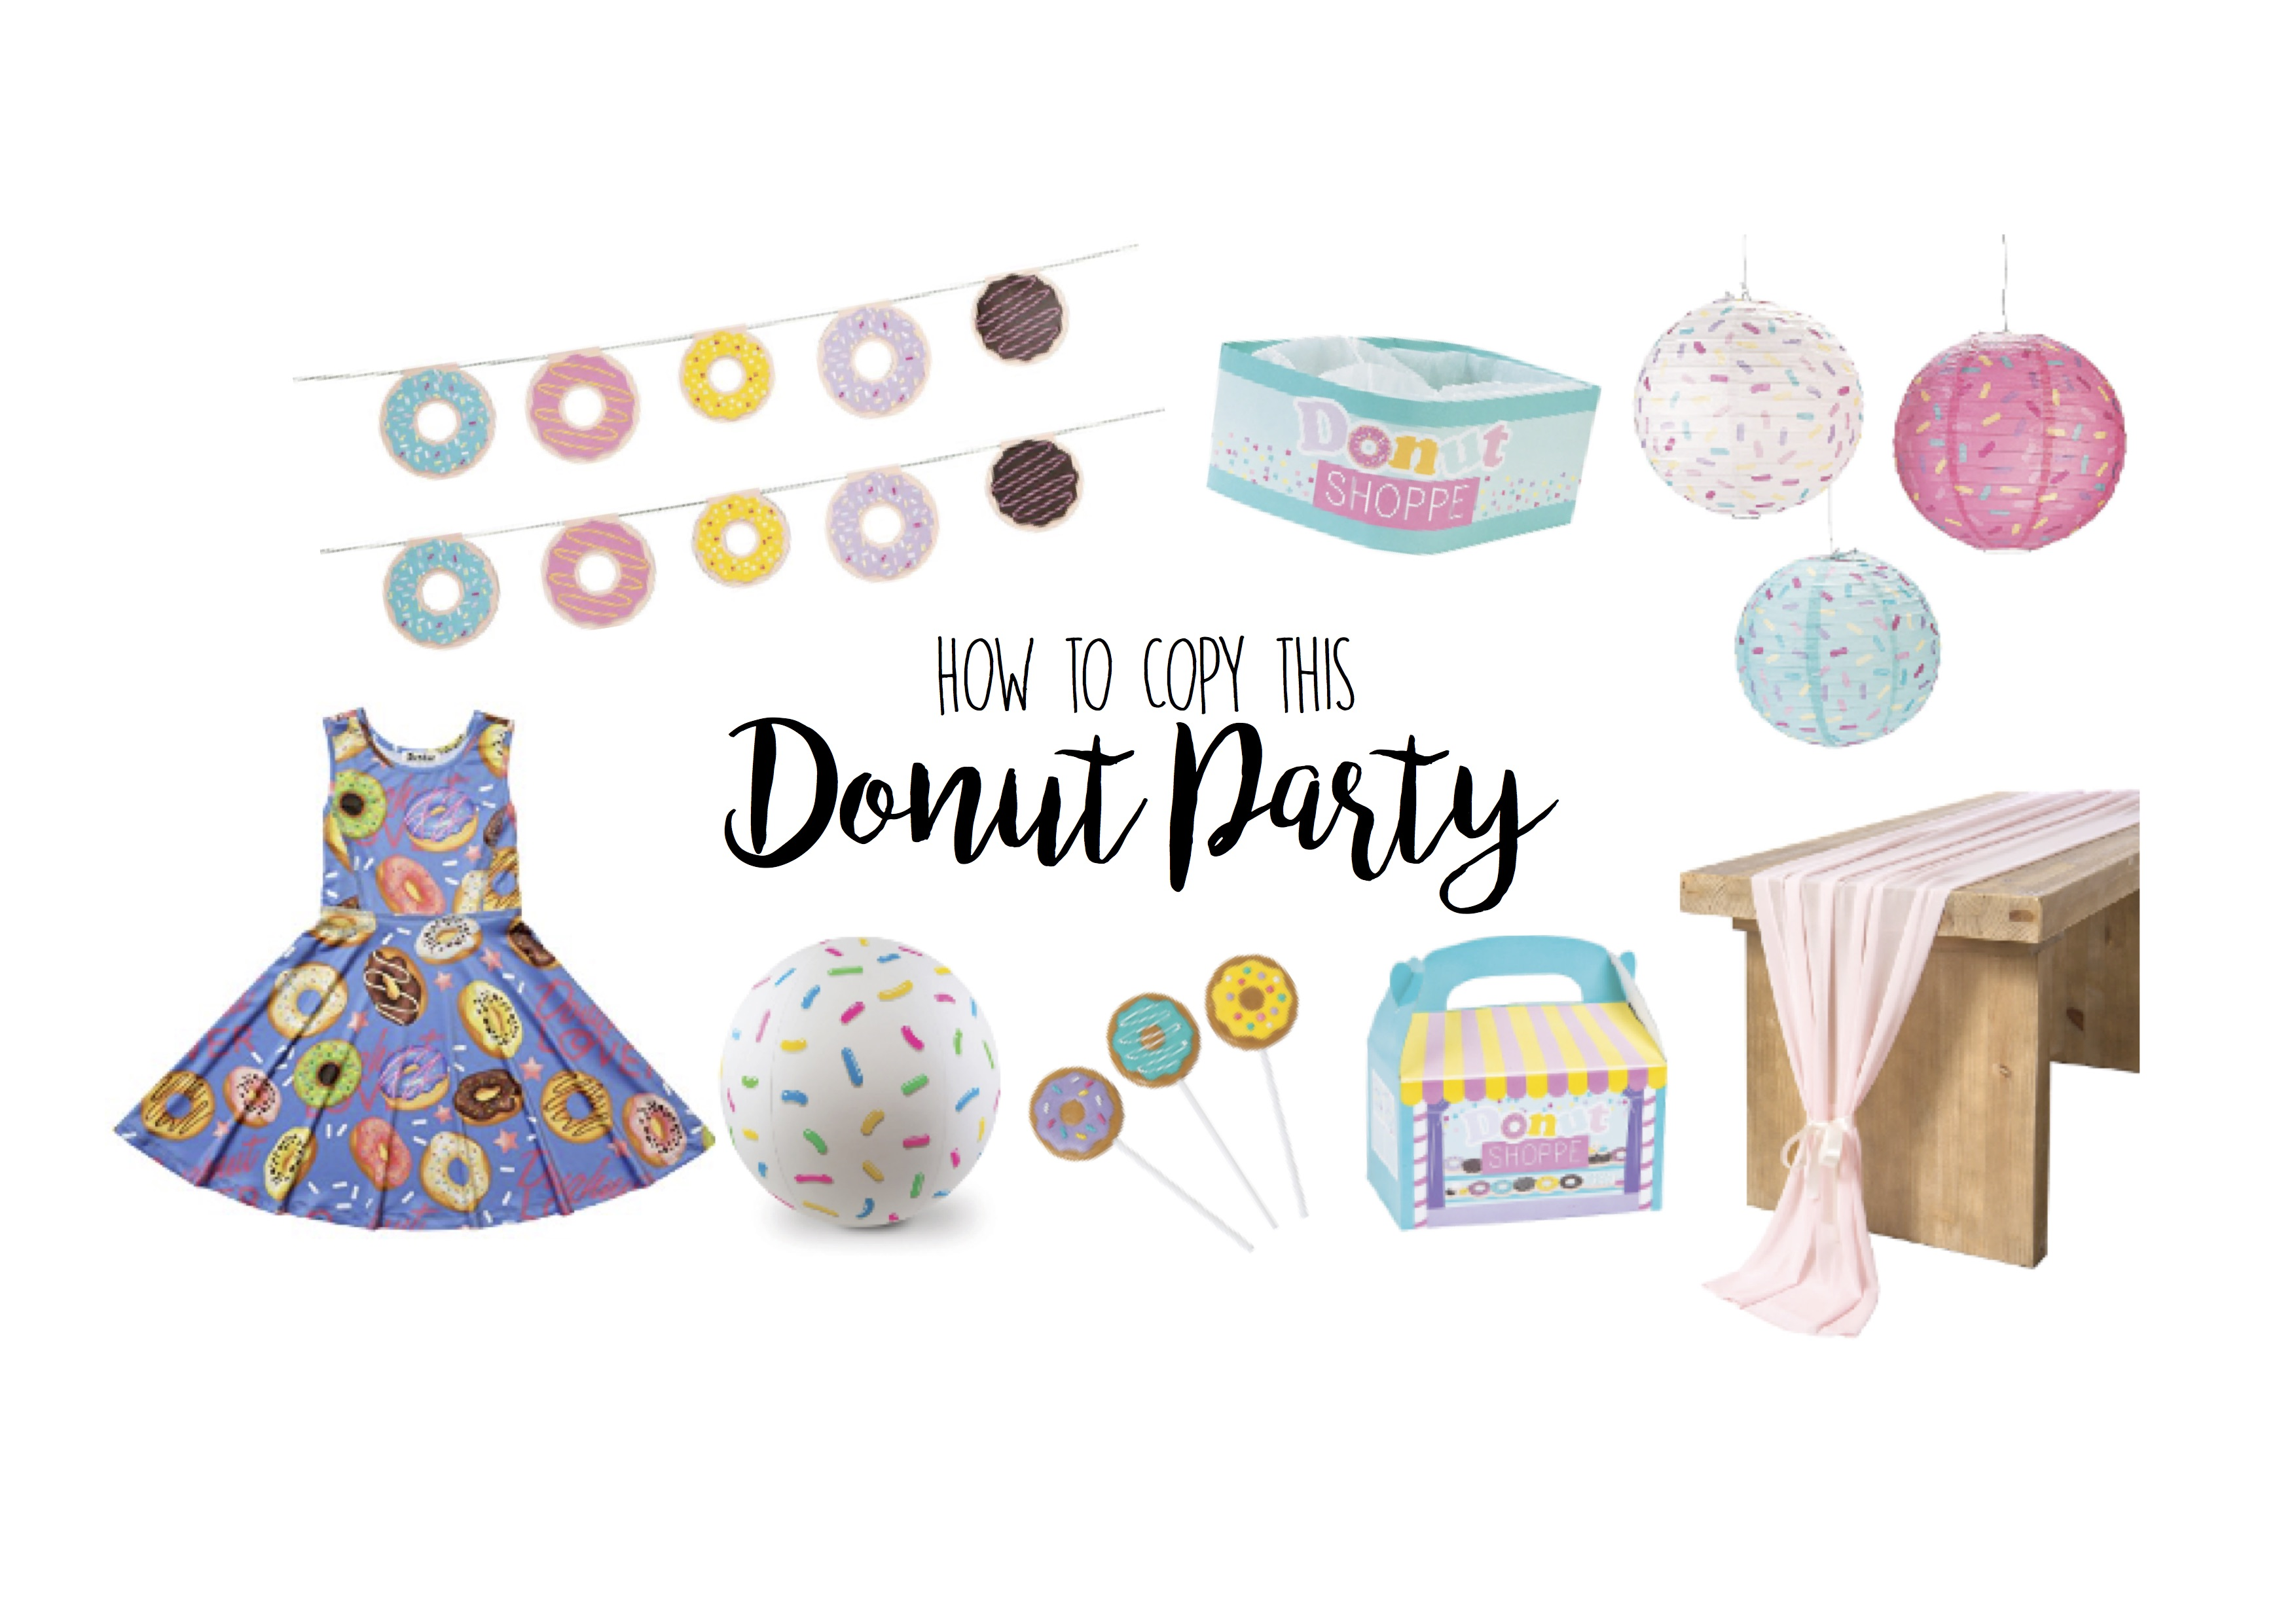 Donut Birthday Party - Sweetest Ideas and Decor